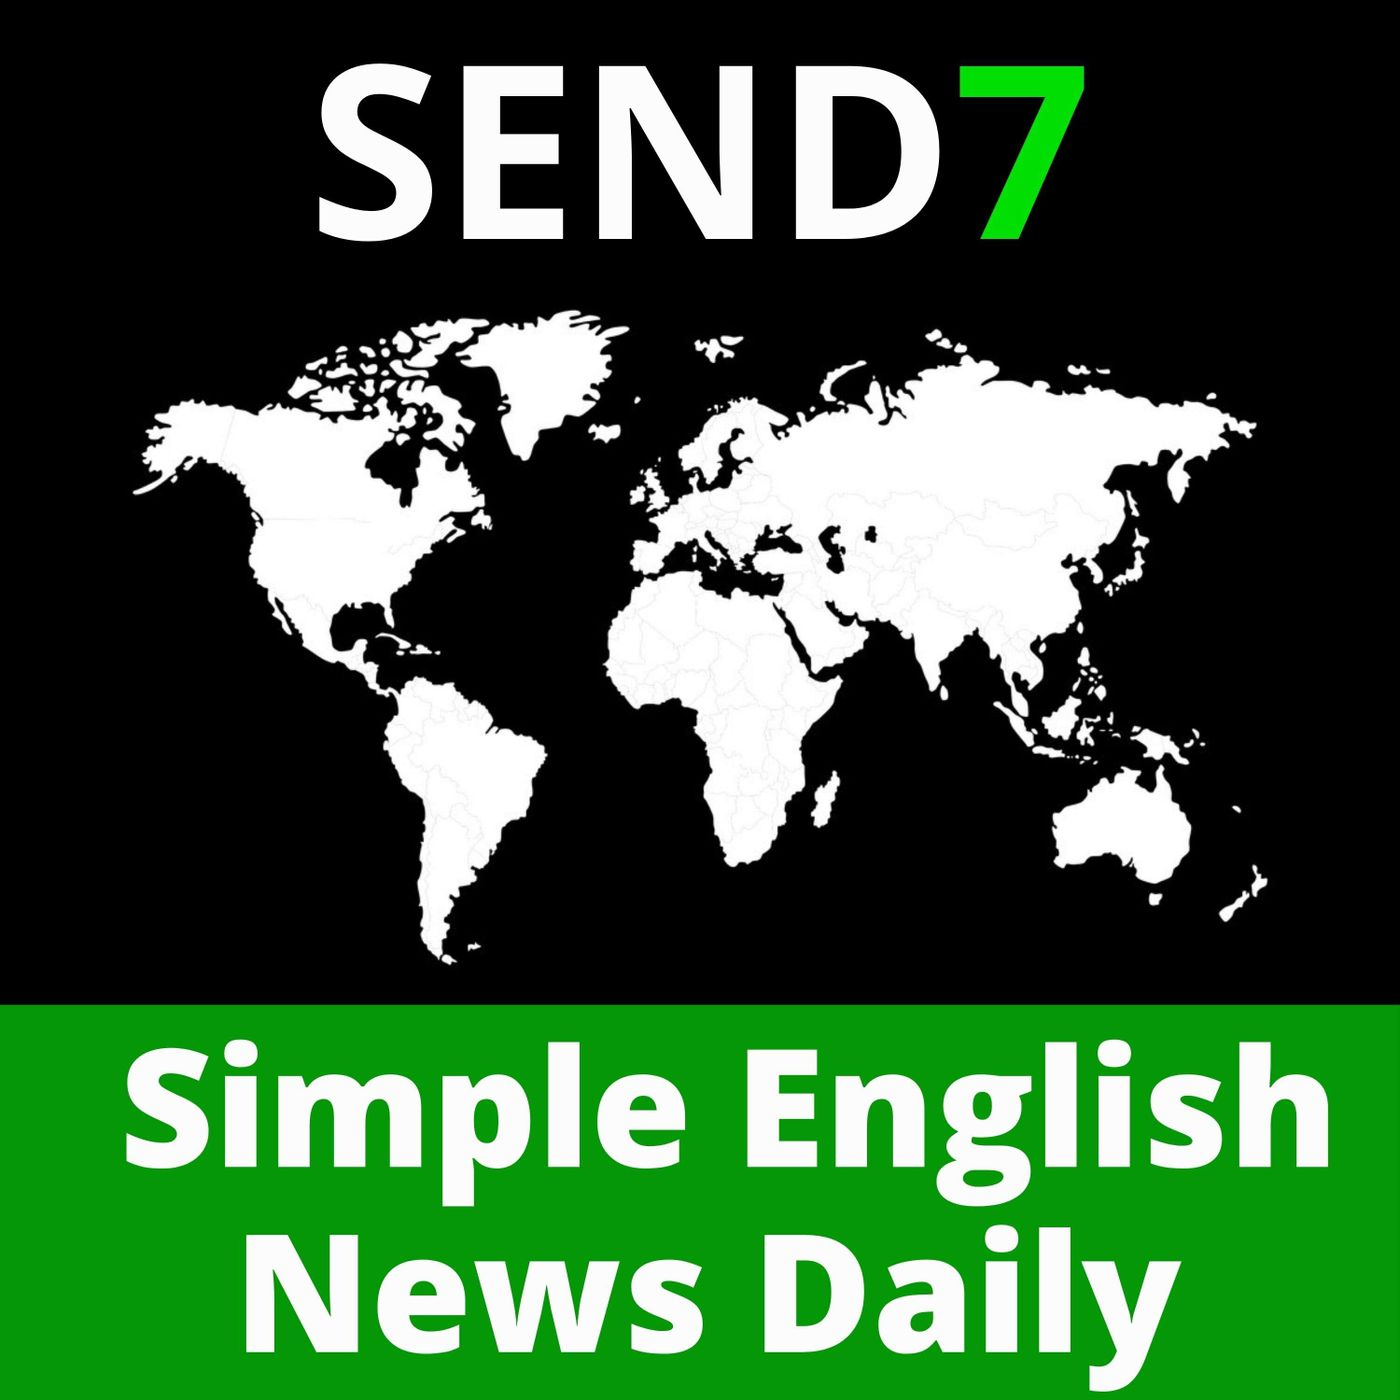 Friday 24th September 2021. World News. Today: UN general assembly. US donates doses. Argentina relaxes. Japan next PM? Myanmar fighting. Sr